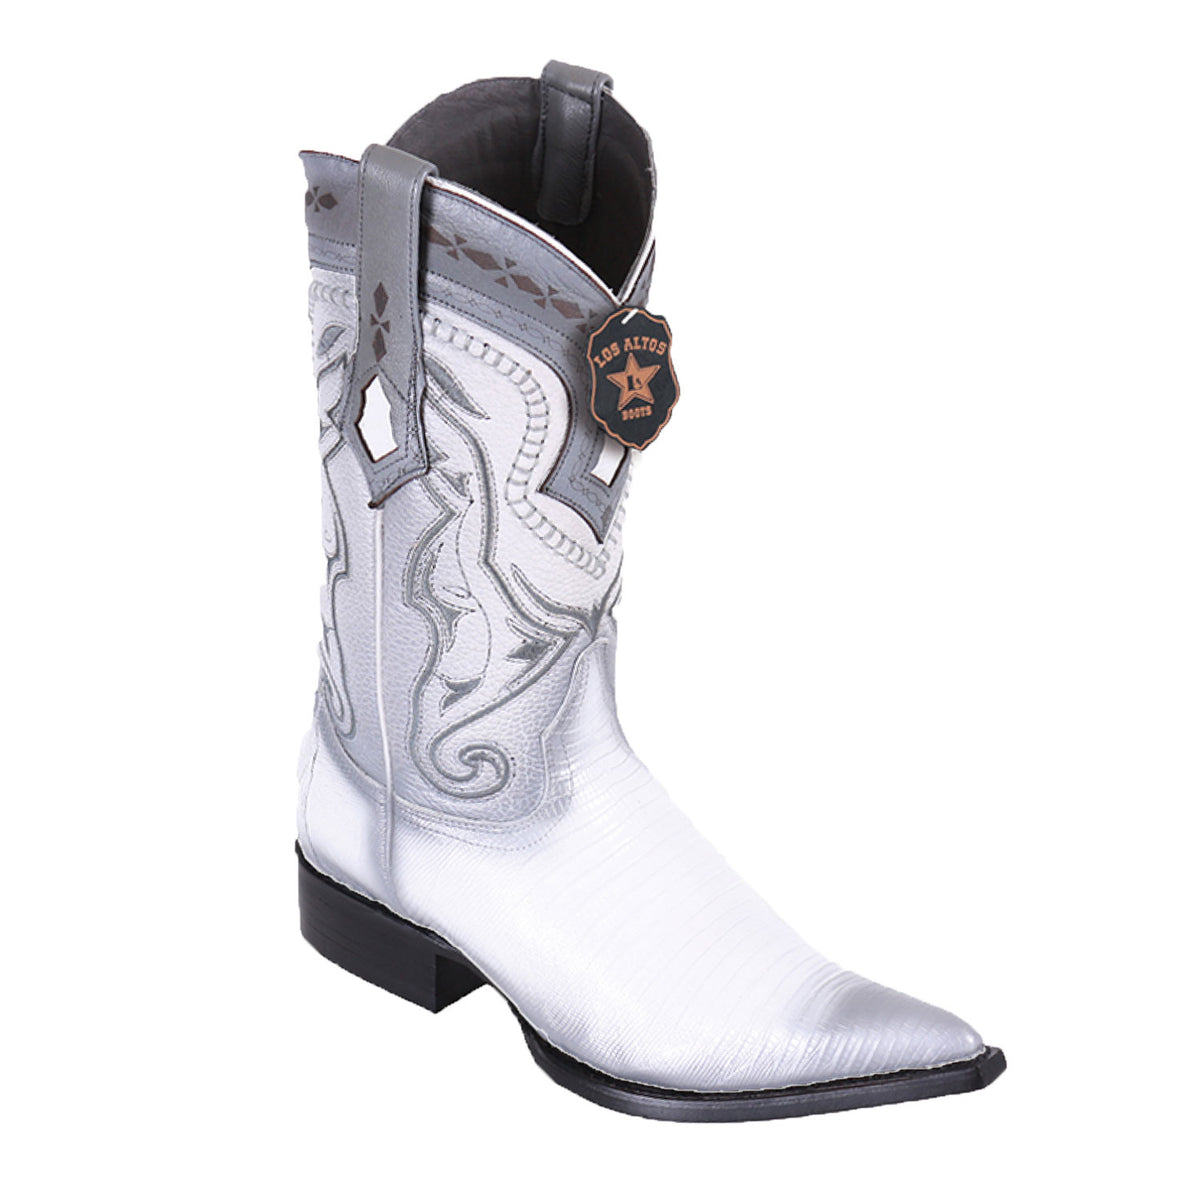 Lizard Skin Boot LAB-95307